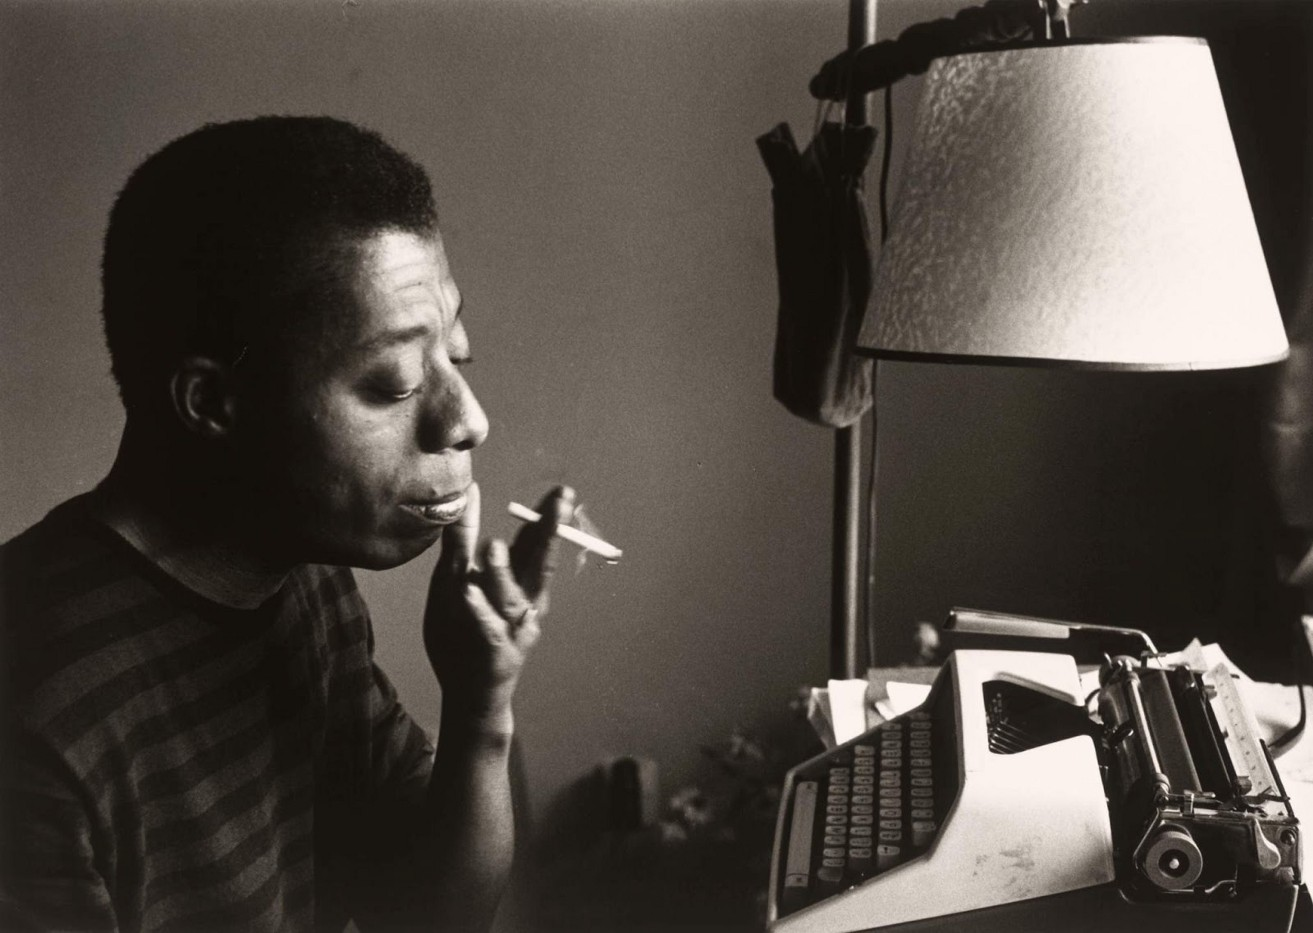 Faggot As Footnote: On James Baldwin, 'I Am Not Your Negro', 'Can I